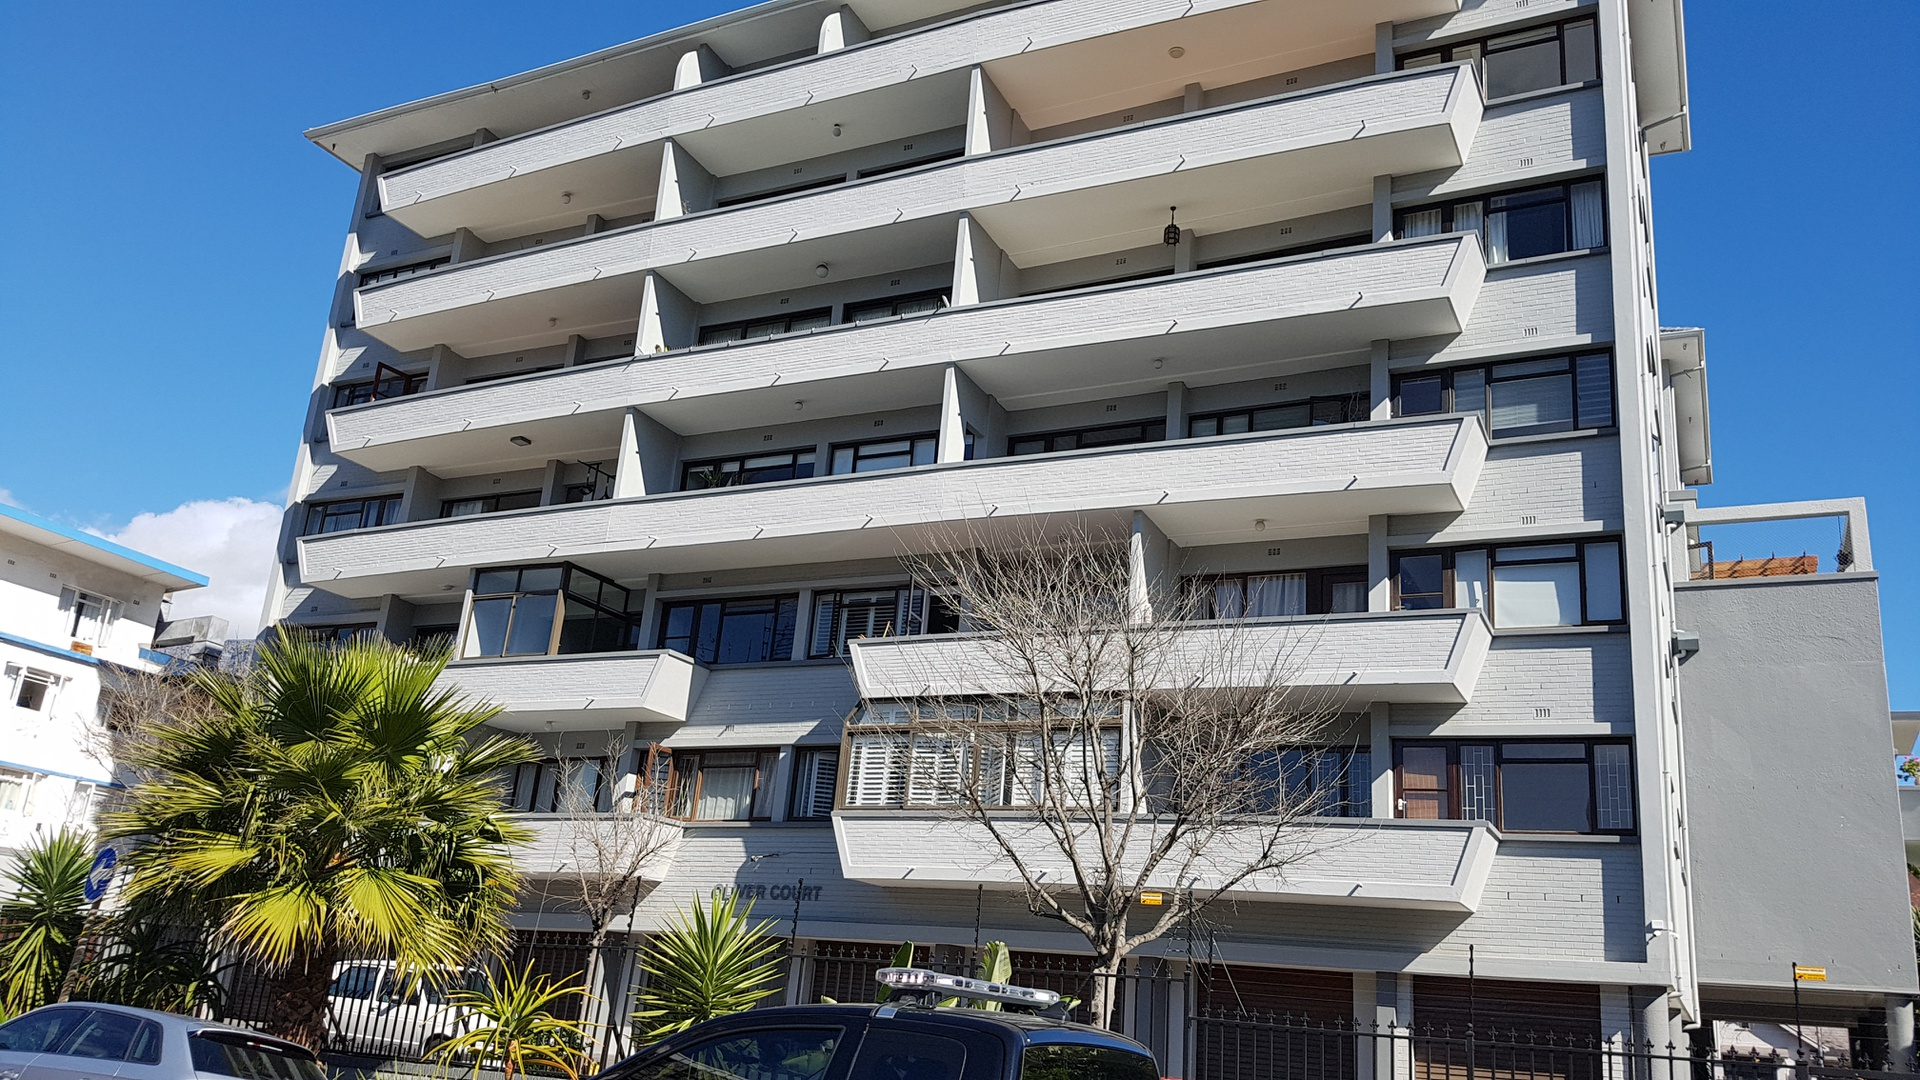 Apartment in Sea Point - Building